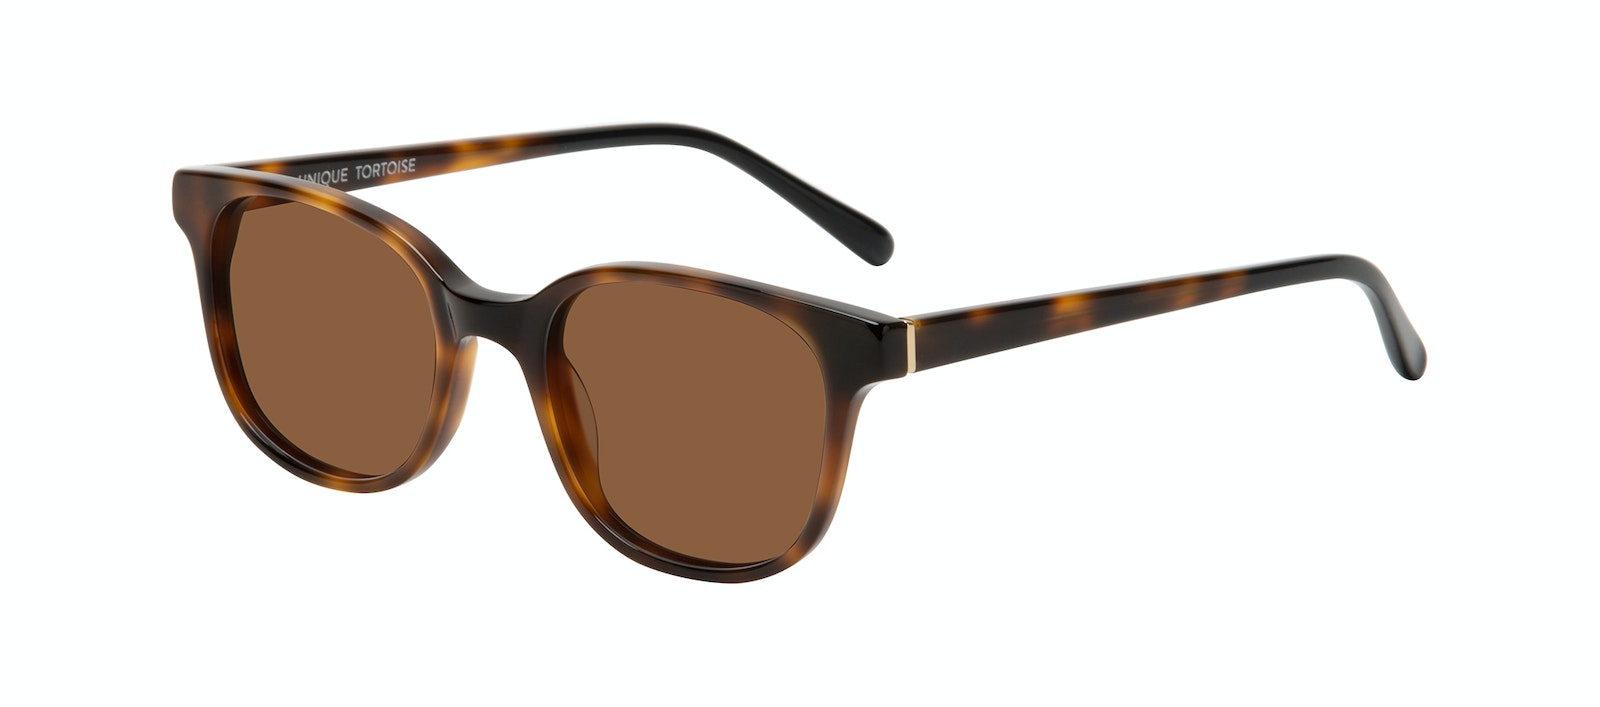 Affordable Fashion Glasses Square Sunglasses Women Unique Tortoise Tilt